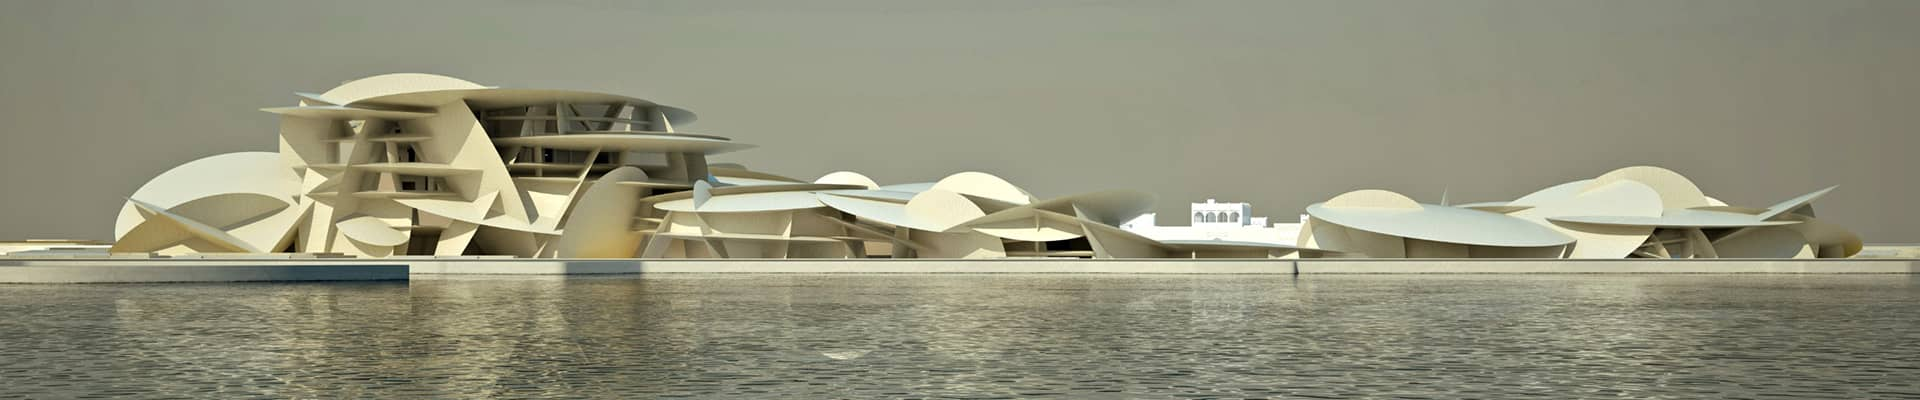 National Museum West View from the Doha Bay